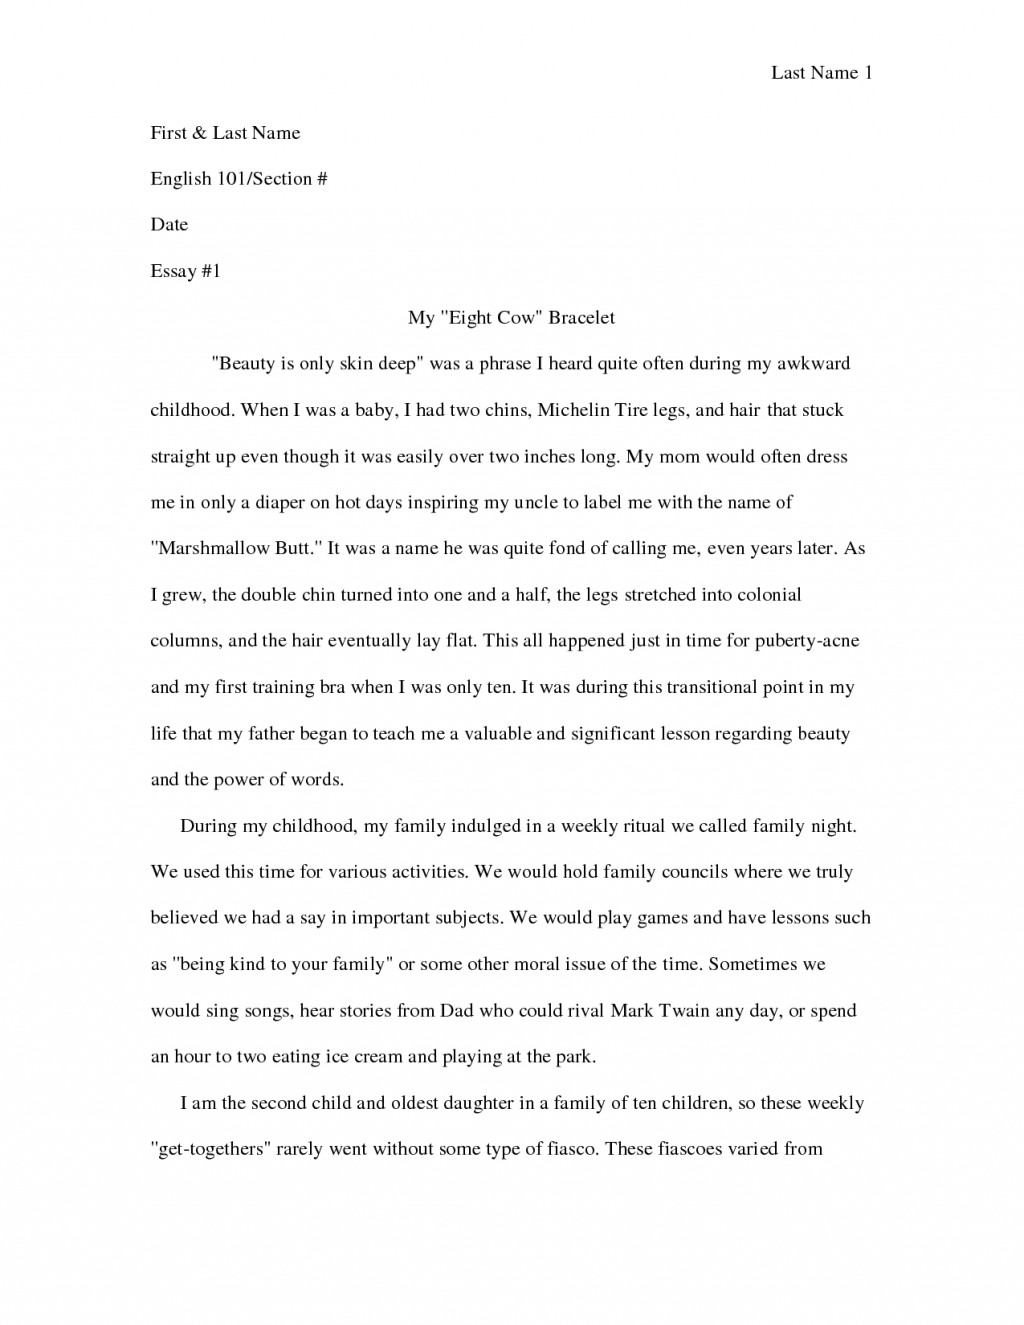 015 Narrative Essayample Pdf Writings And Essaysemplificationamples Doritrcatodos Co Pertaini Sat Persuasive Argumentative Opinion Classification Process Writing Breathtaking Essay Example Examples For High School 5th Grade 12 Large